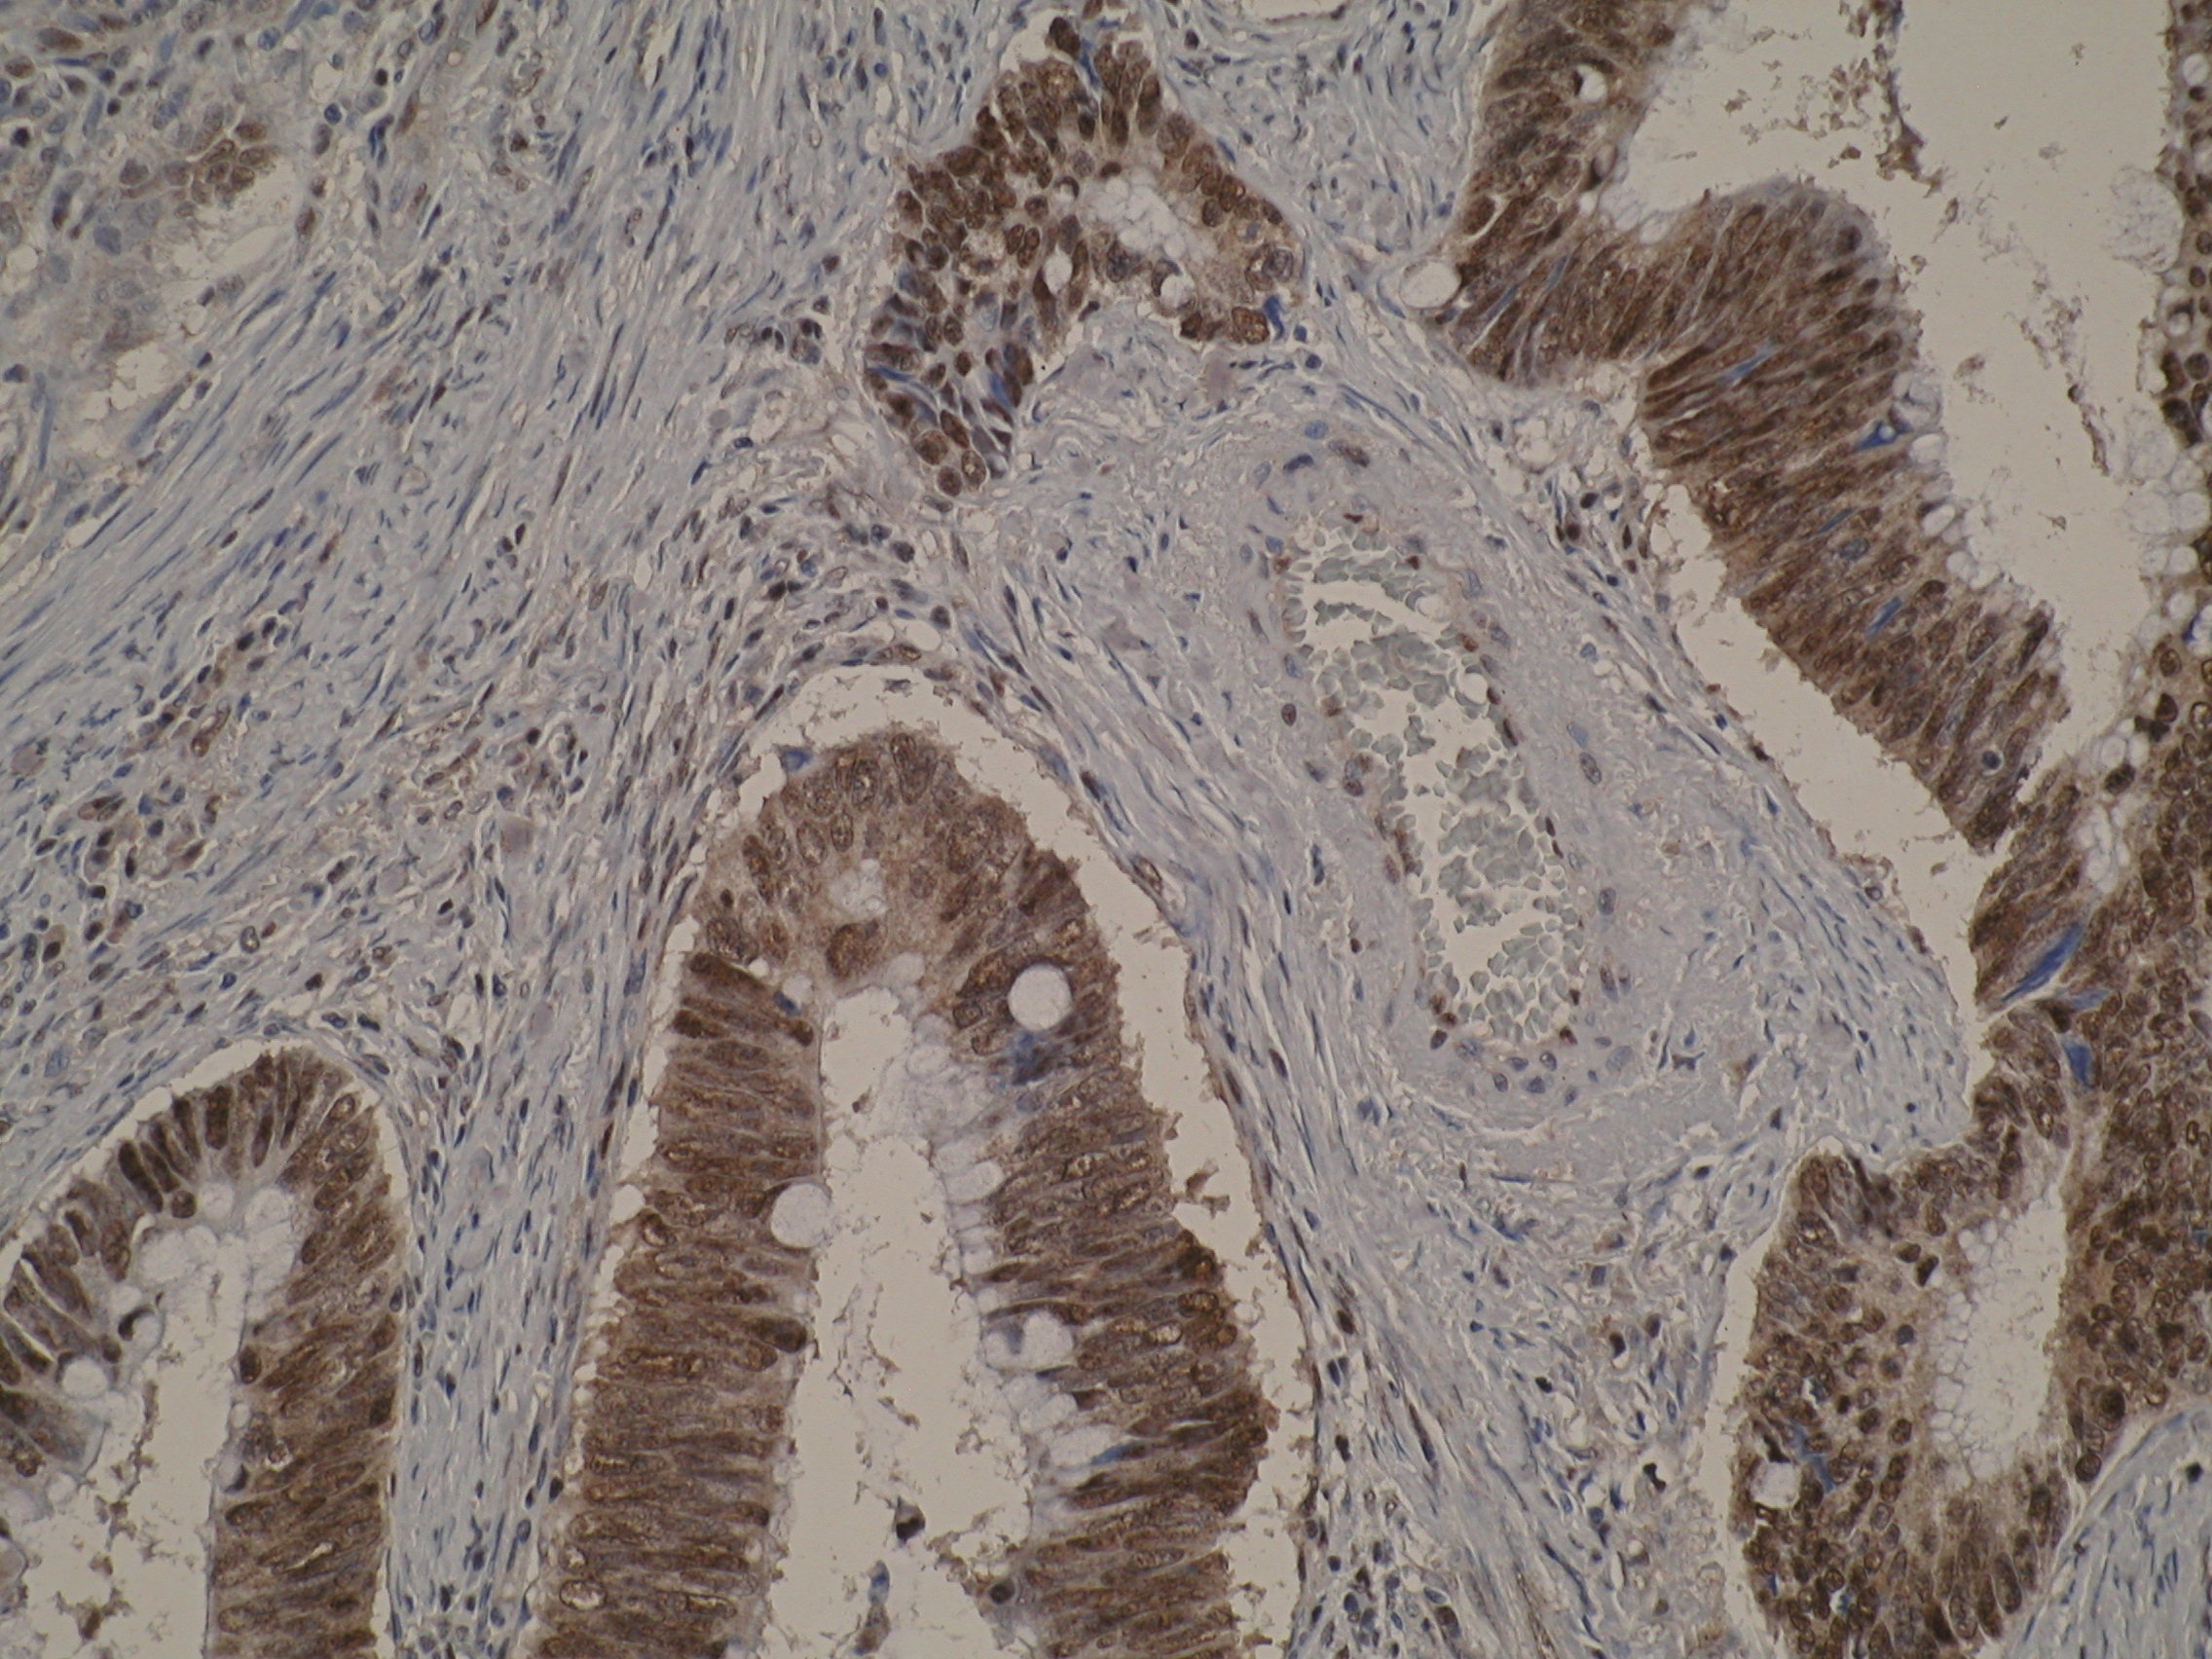 Immunohistochemistry was performed on formalin-fixed, paraffin-embedded tissue sections using Anti-BCLAF1 [M33-P5B11]. Image is showing both cytoplasmic and nuclear localisation positivity of BCLAF1 in colon cancer which is in agreement with existing literature. Exclusively nuclear localisation of BCLAF1 is observed in non-neoplastic colon mucosa. Antigen retrieval step was required (microwave 10 min @ 950W in 0.01M sodium citrate buffer, pH 6.0).